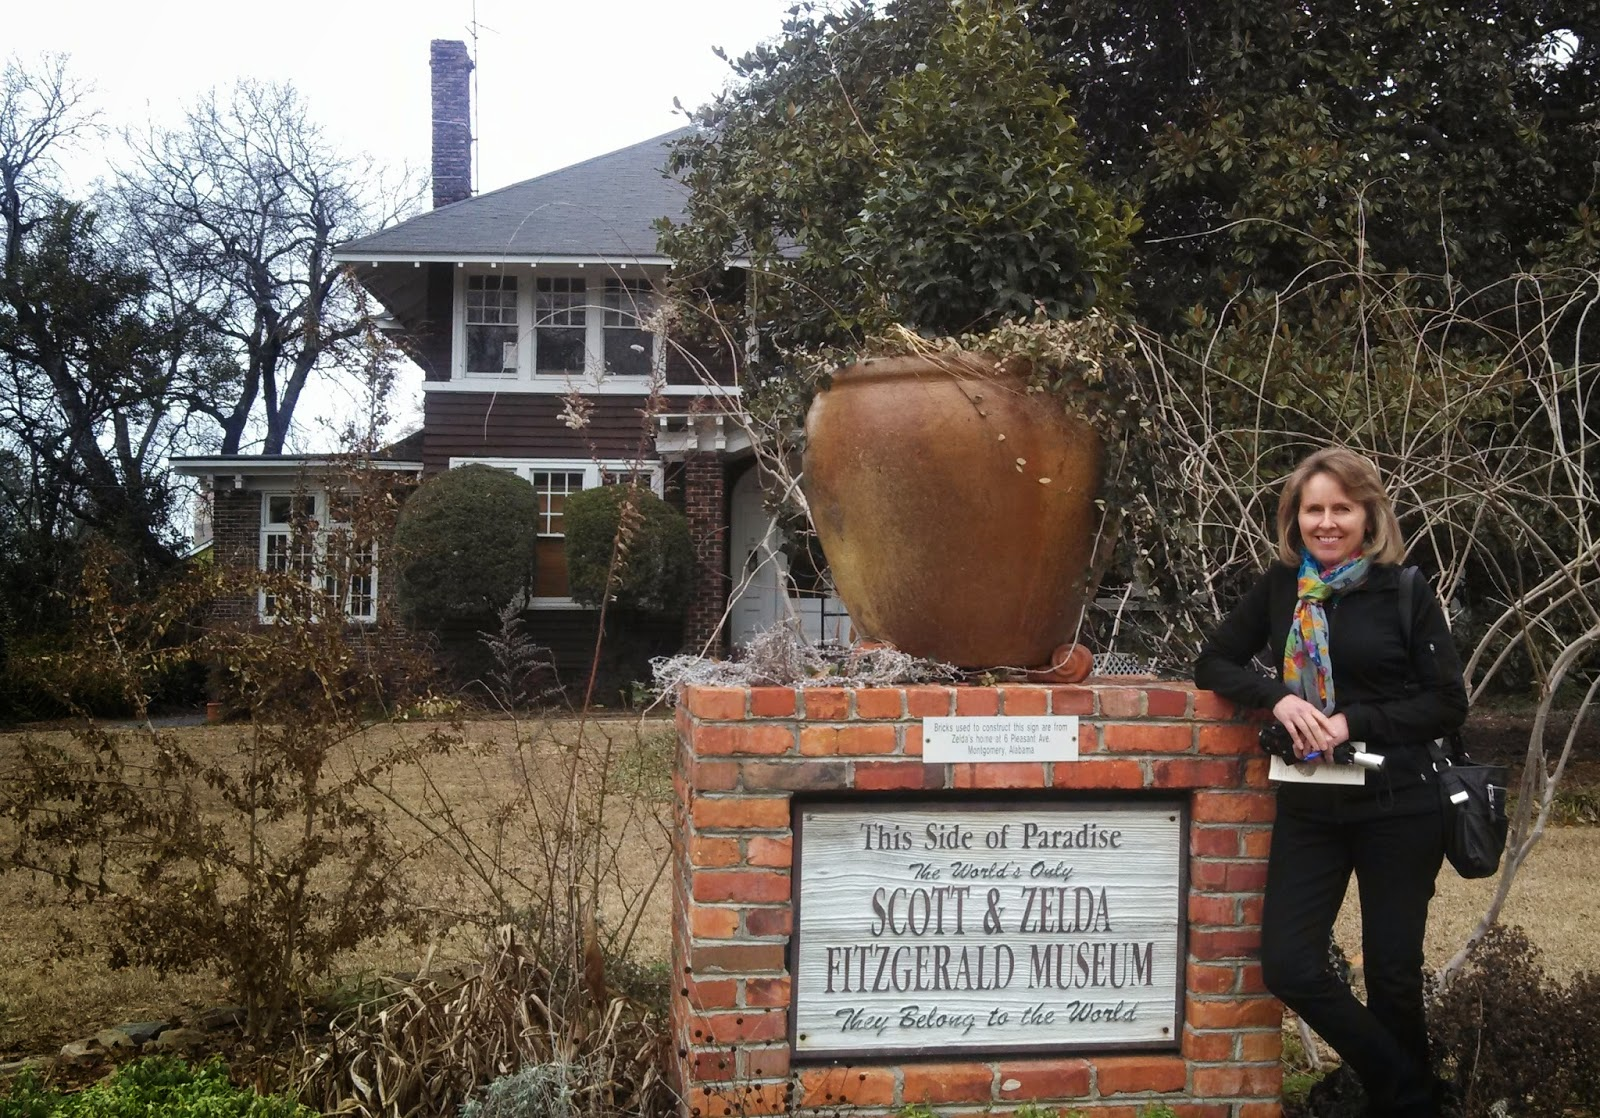 F. Scott and Zelda FItzgerald Home, Montgomery, AL / Souvenir Chronicles